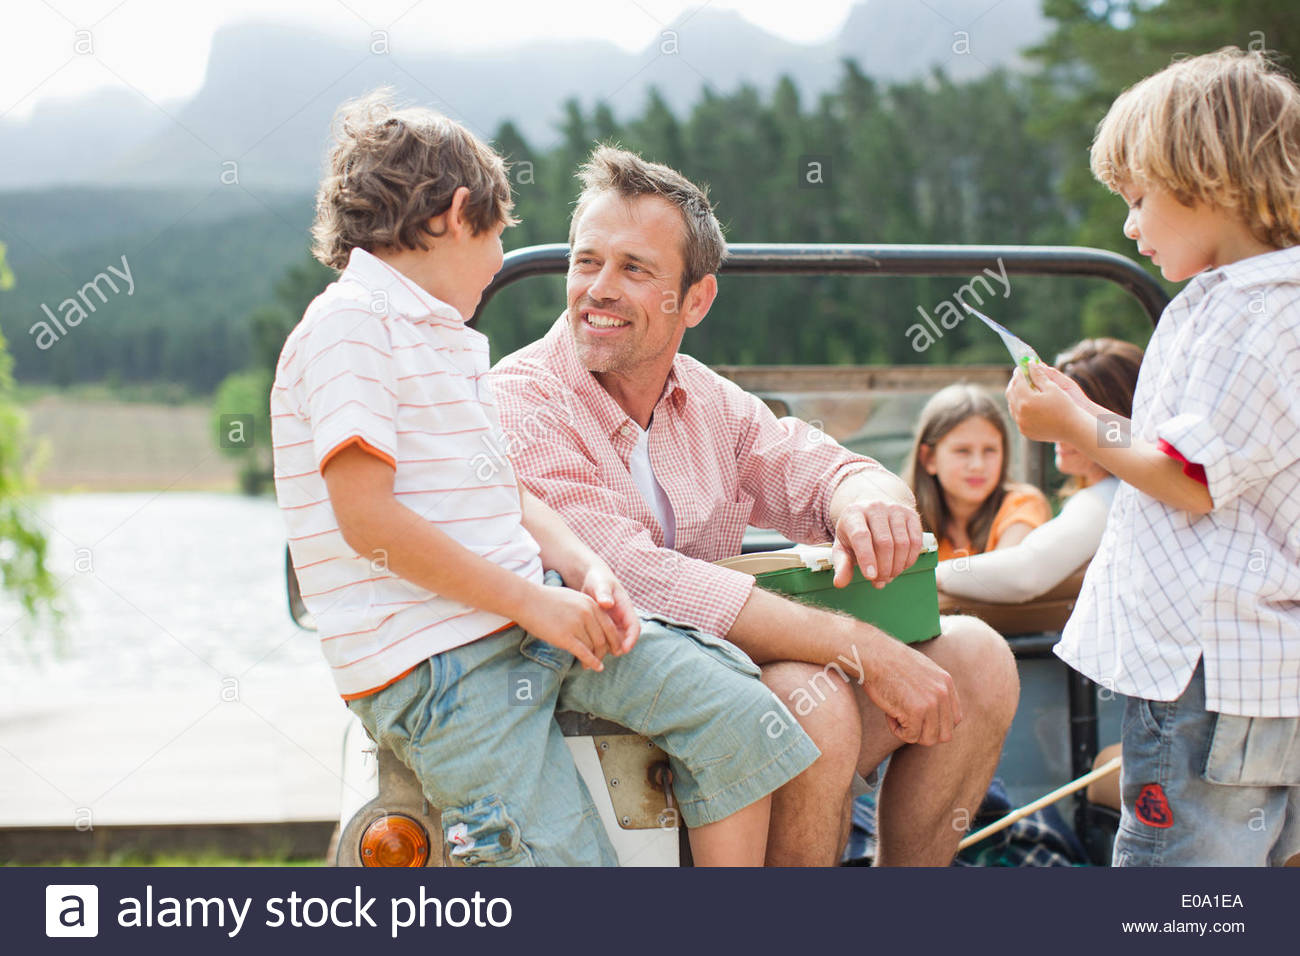 Family sitting in vehicle - Stock Image